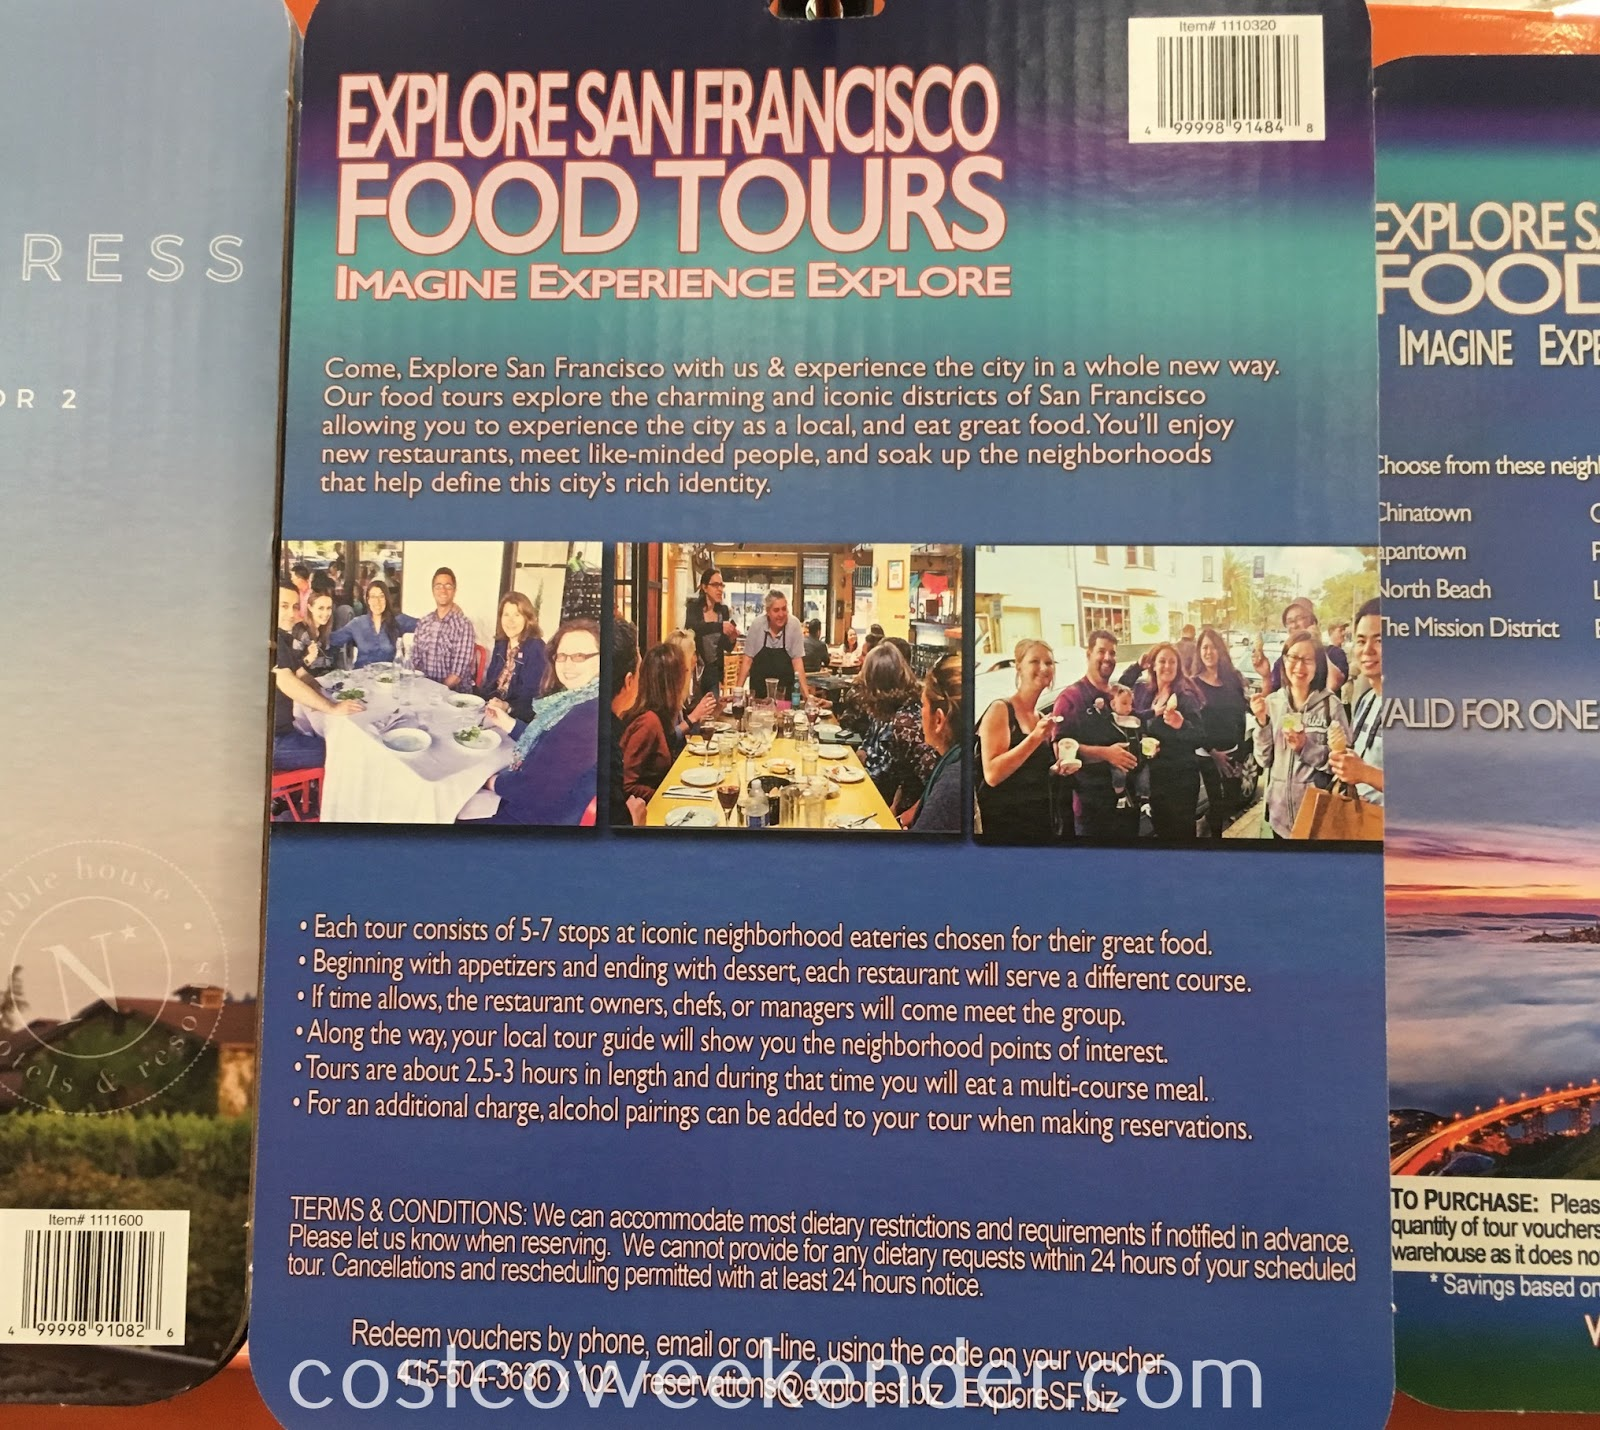 Costco 1110320 - Explore San Francisco Food Tour: great for tourists or natives alike